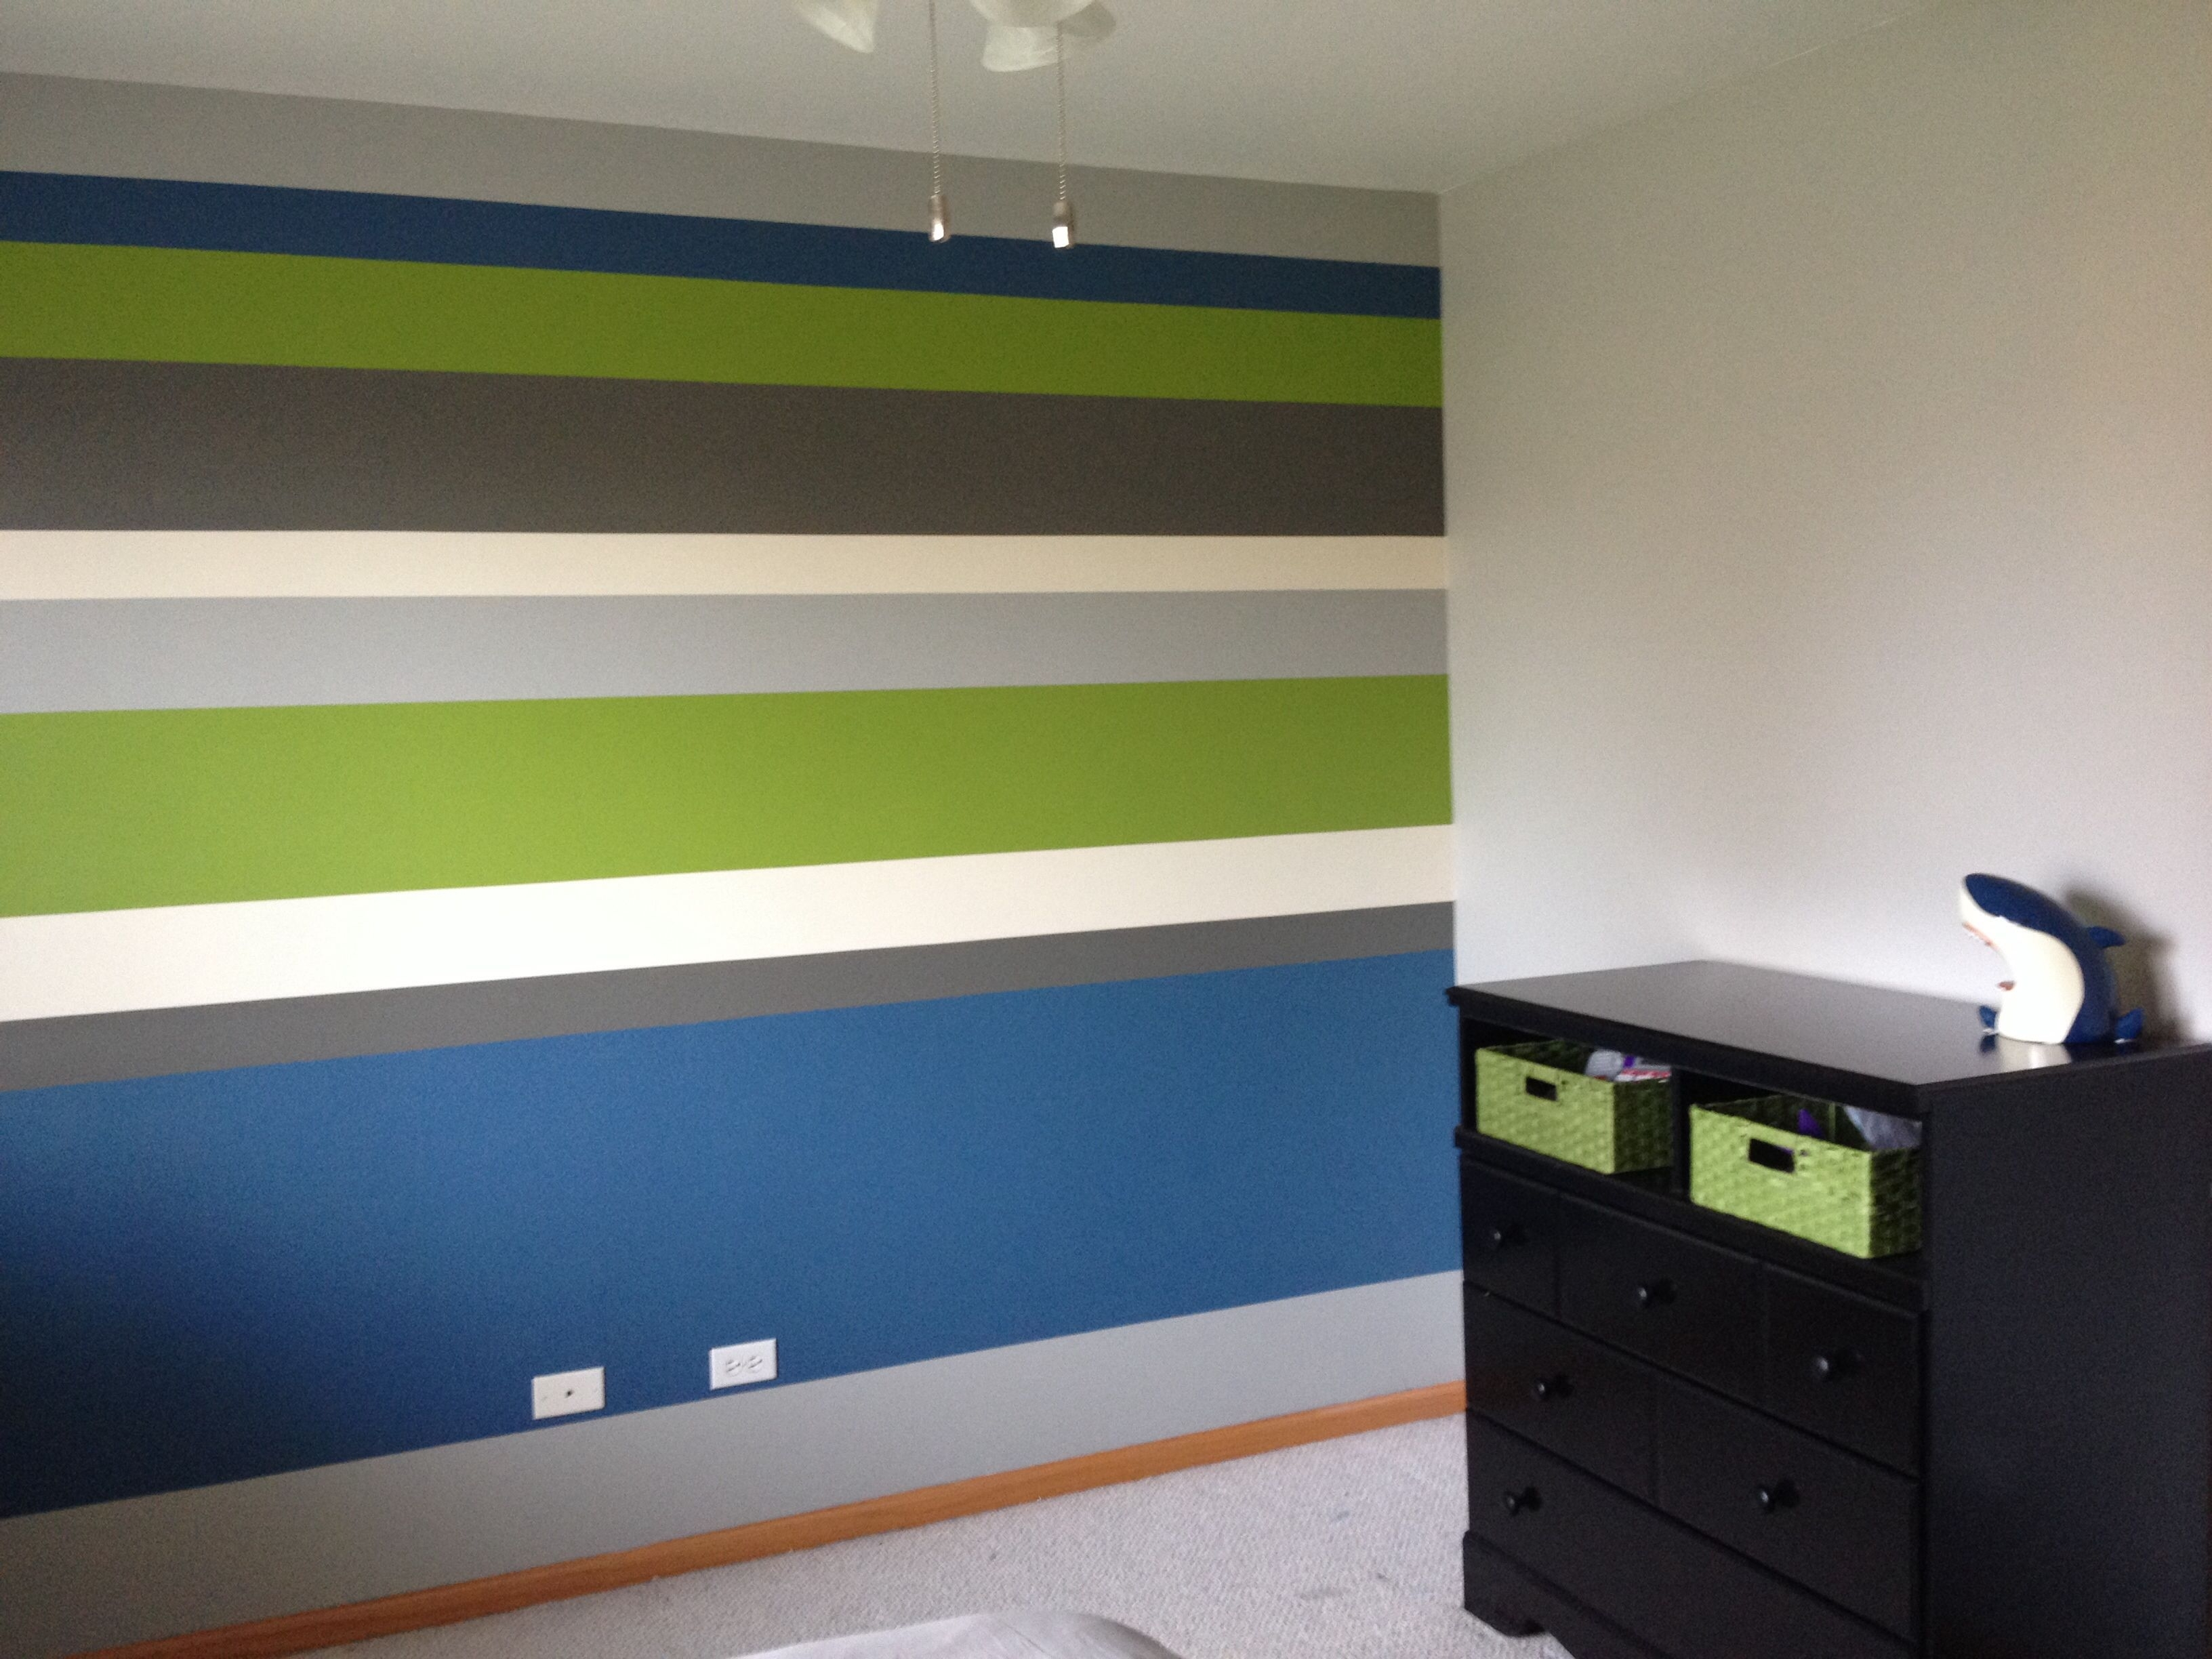 Boys Bedroom! Horizontal Stripes Accent Wall! Bm Stonington Gray Intended For 2018 Horizontal Stripes Wall Accents (View 2 of 15)